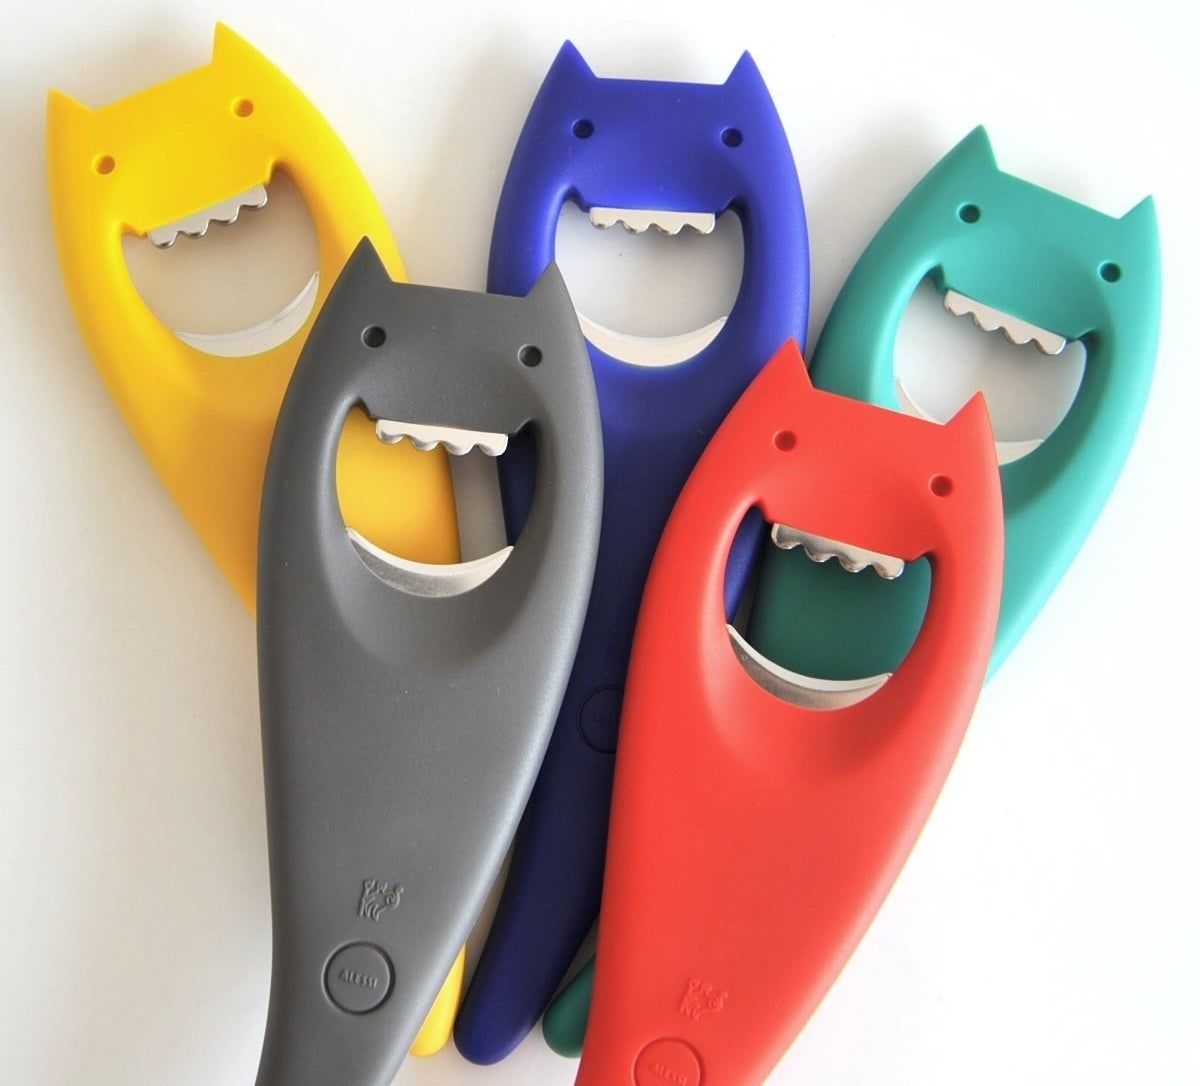 A cute but ghoulish bottle opener that'll encourage you to pop open another bottle.